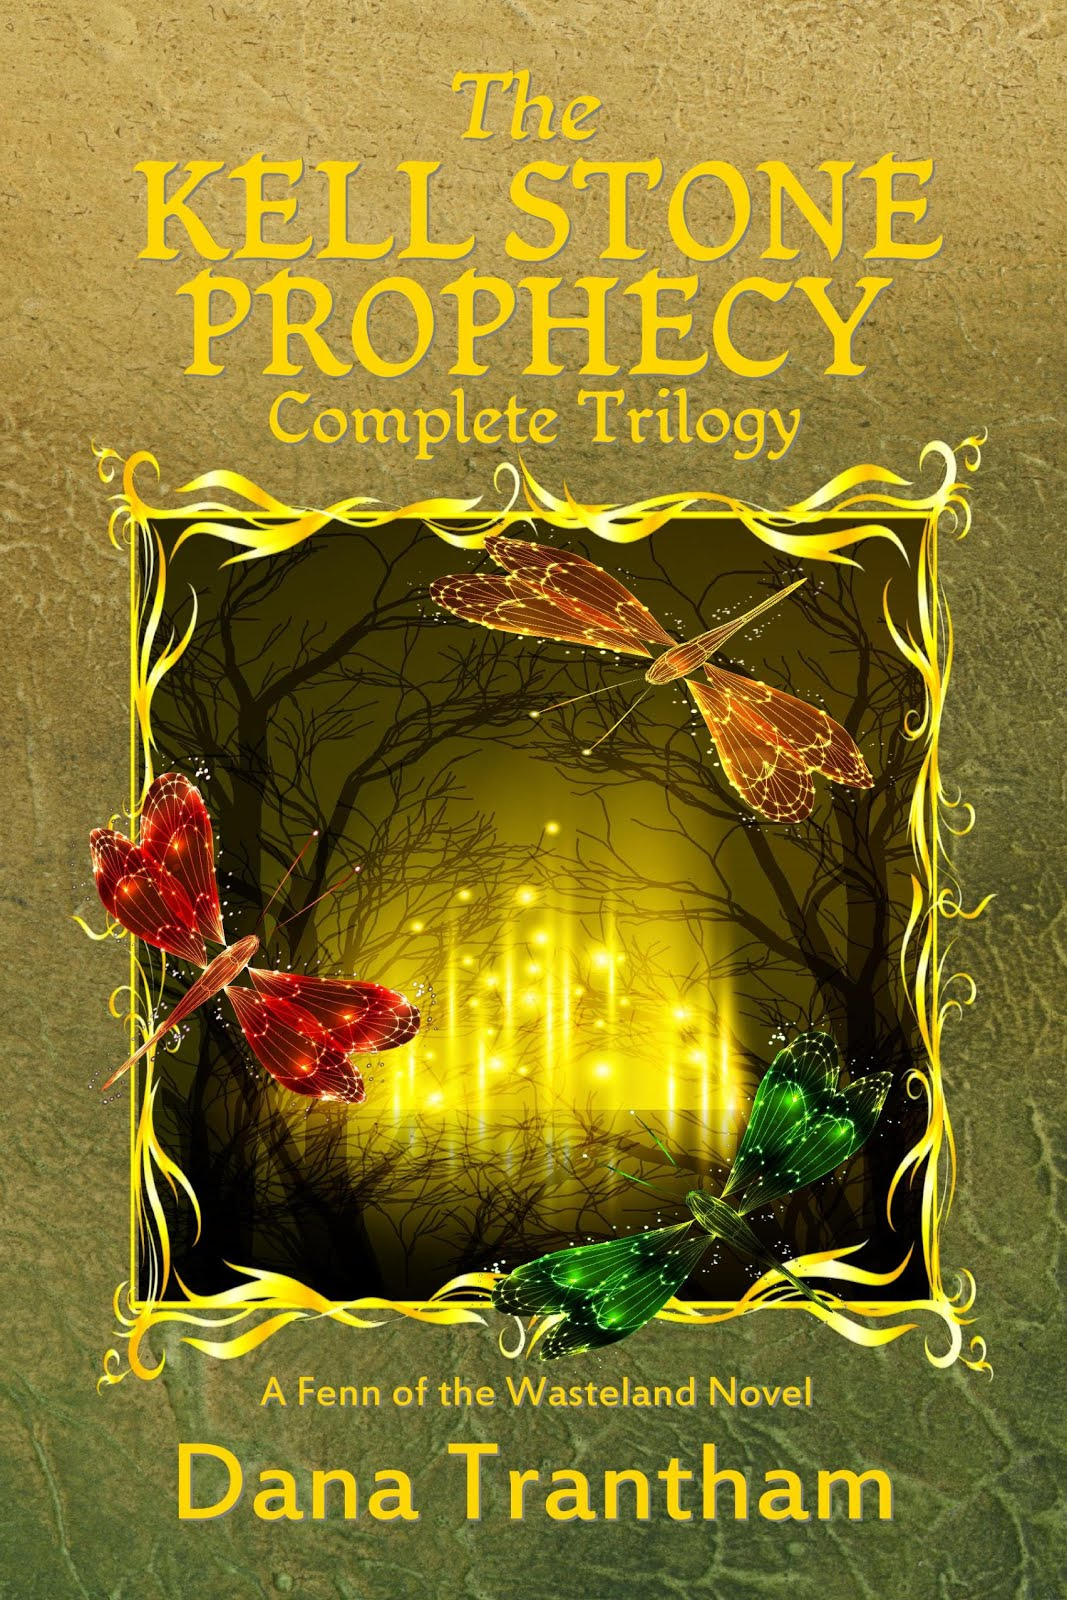 The Kell Stone Prophecy Complete Trilogy